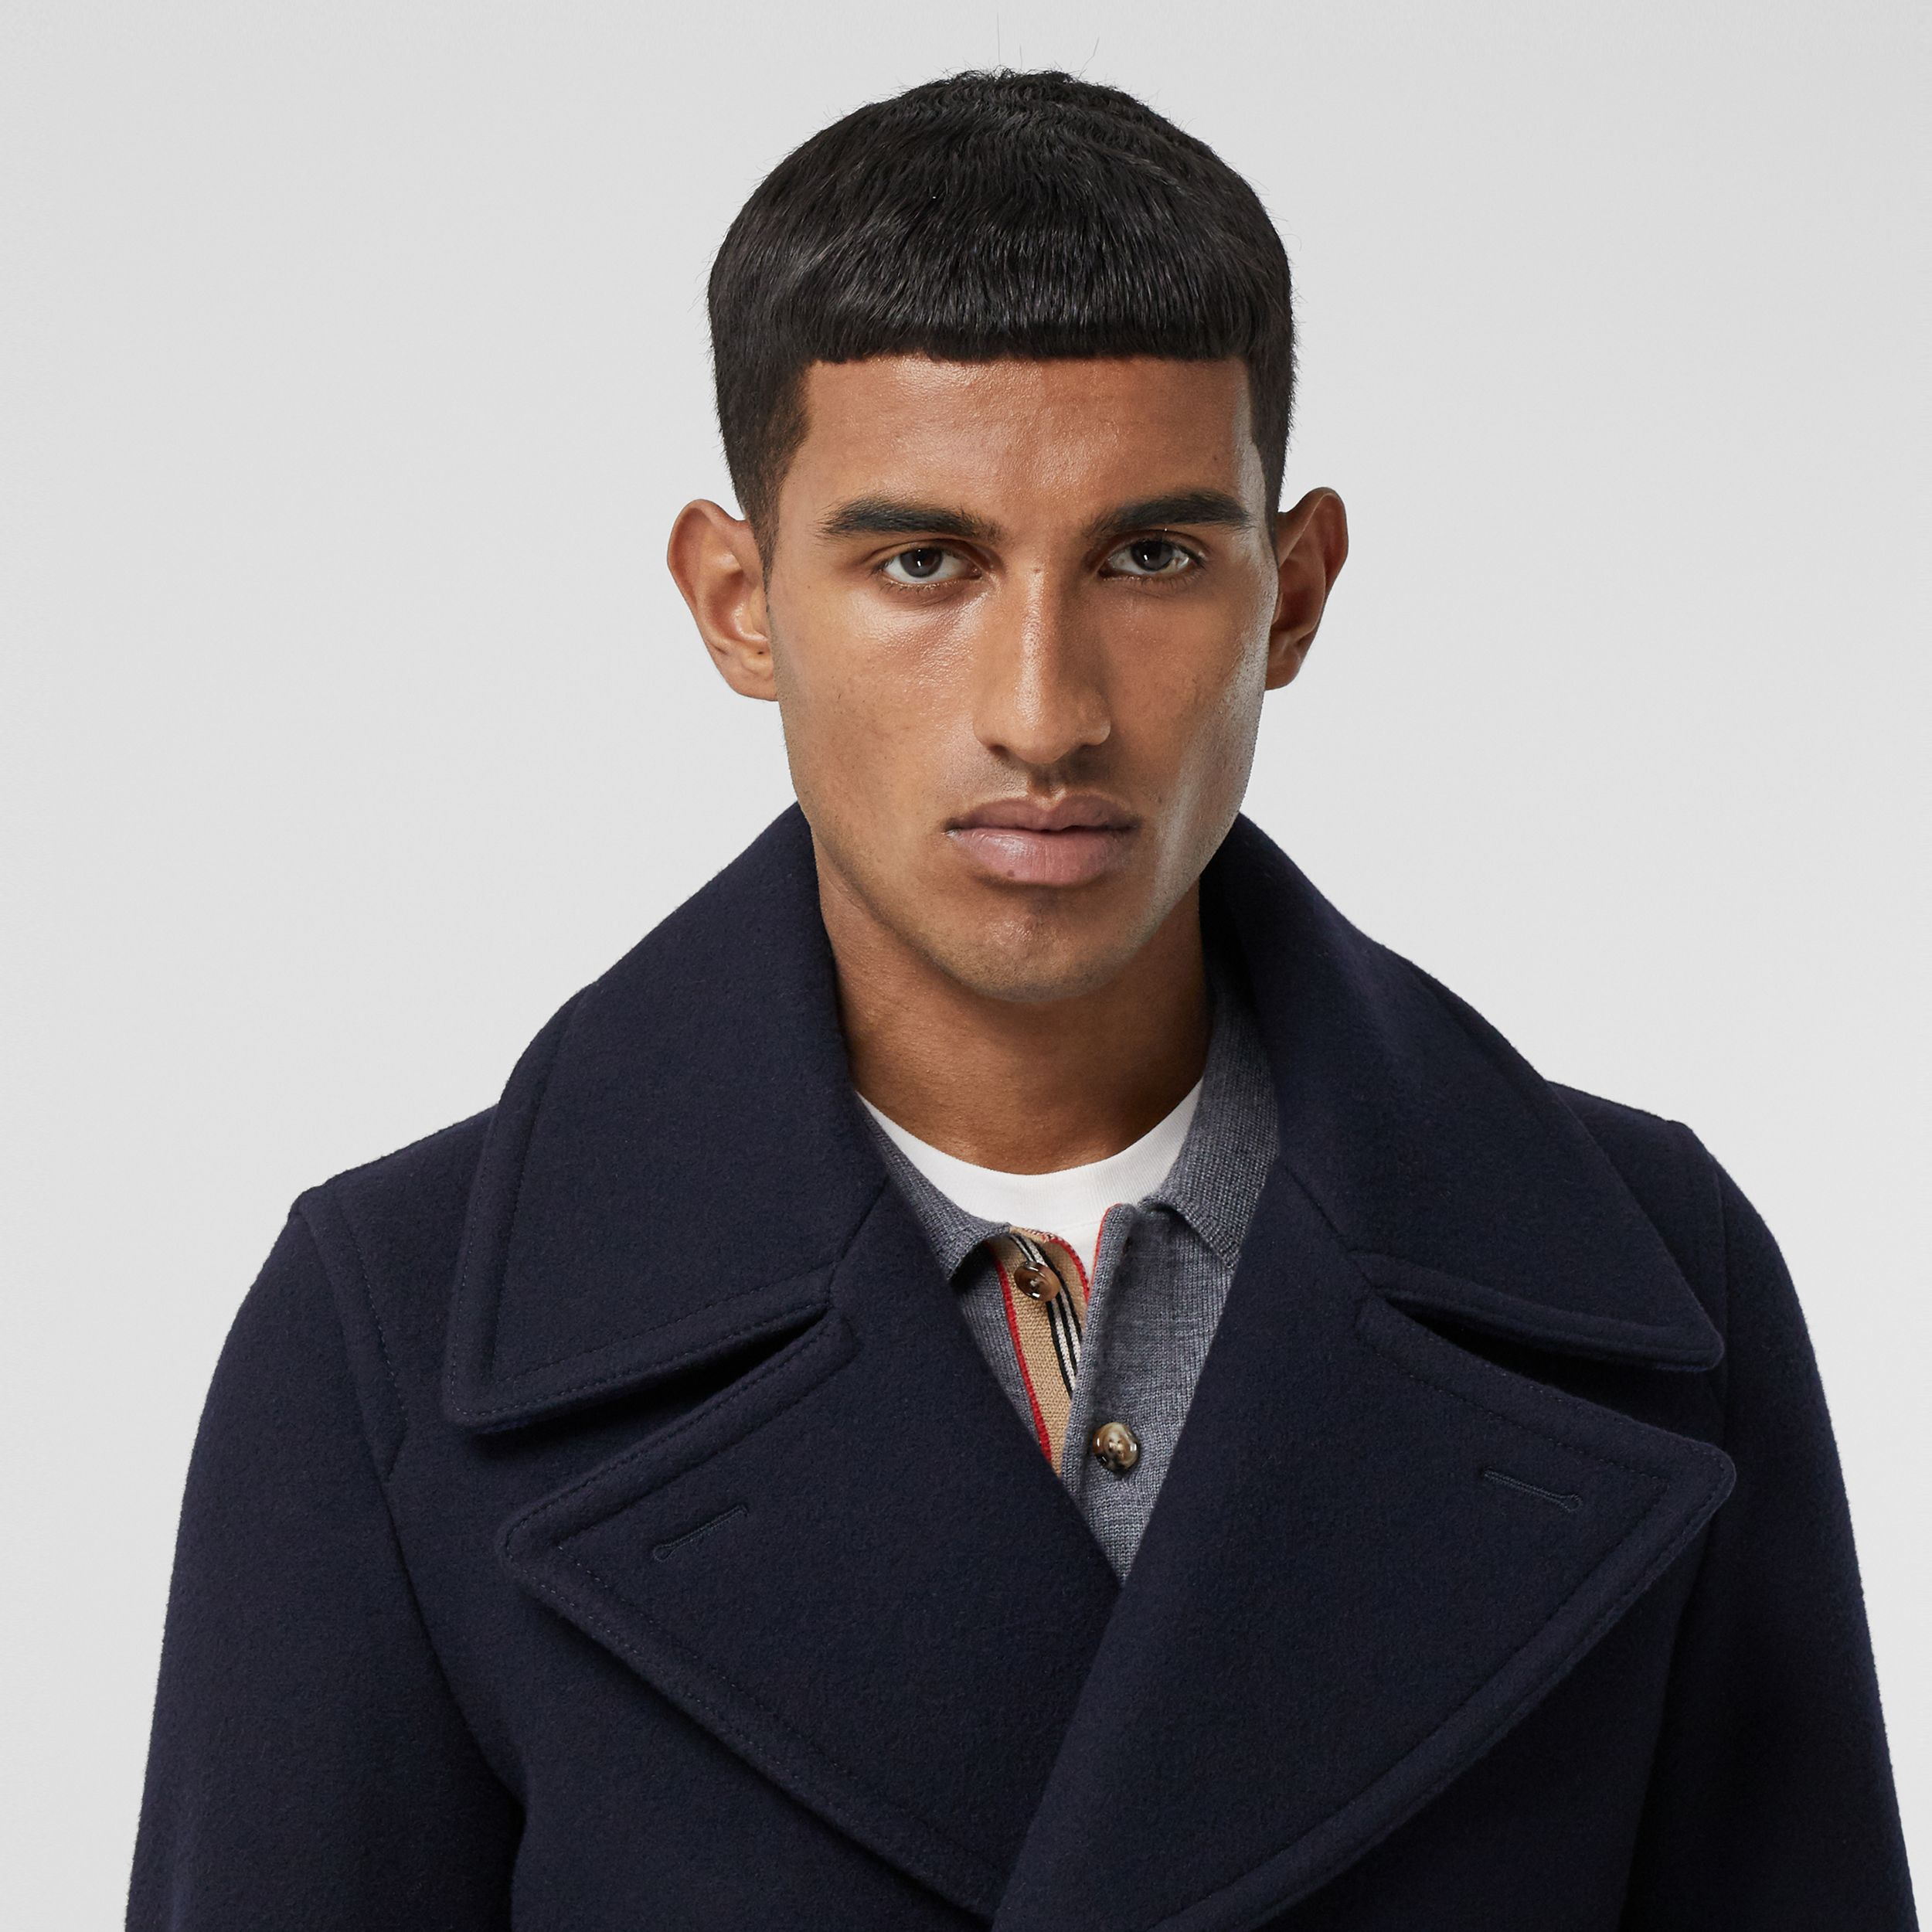 Wool Blend Pea Coat in Navy - Men | Burberry - 2